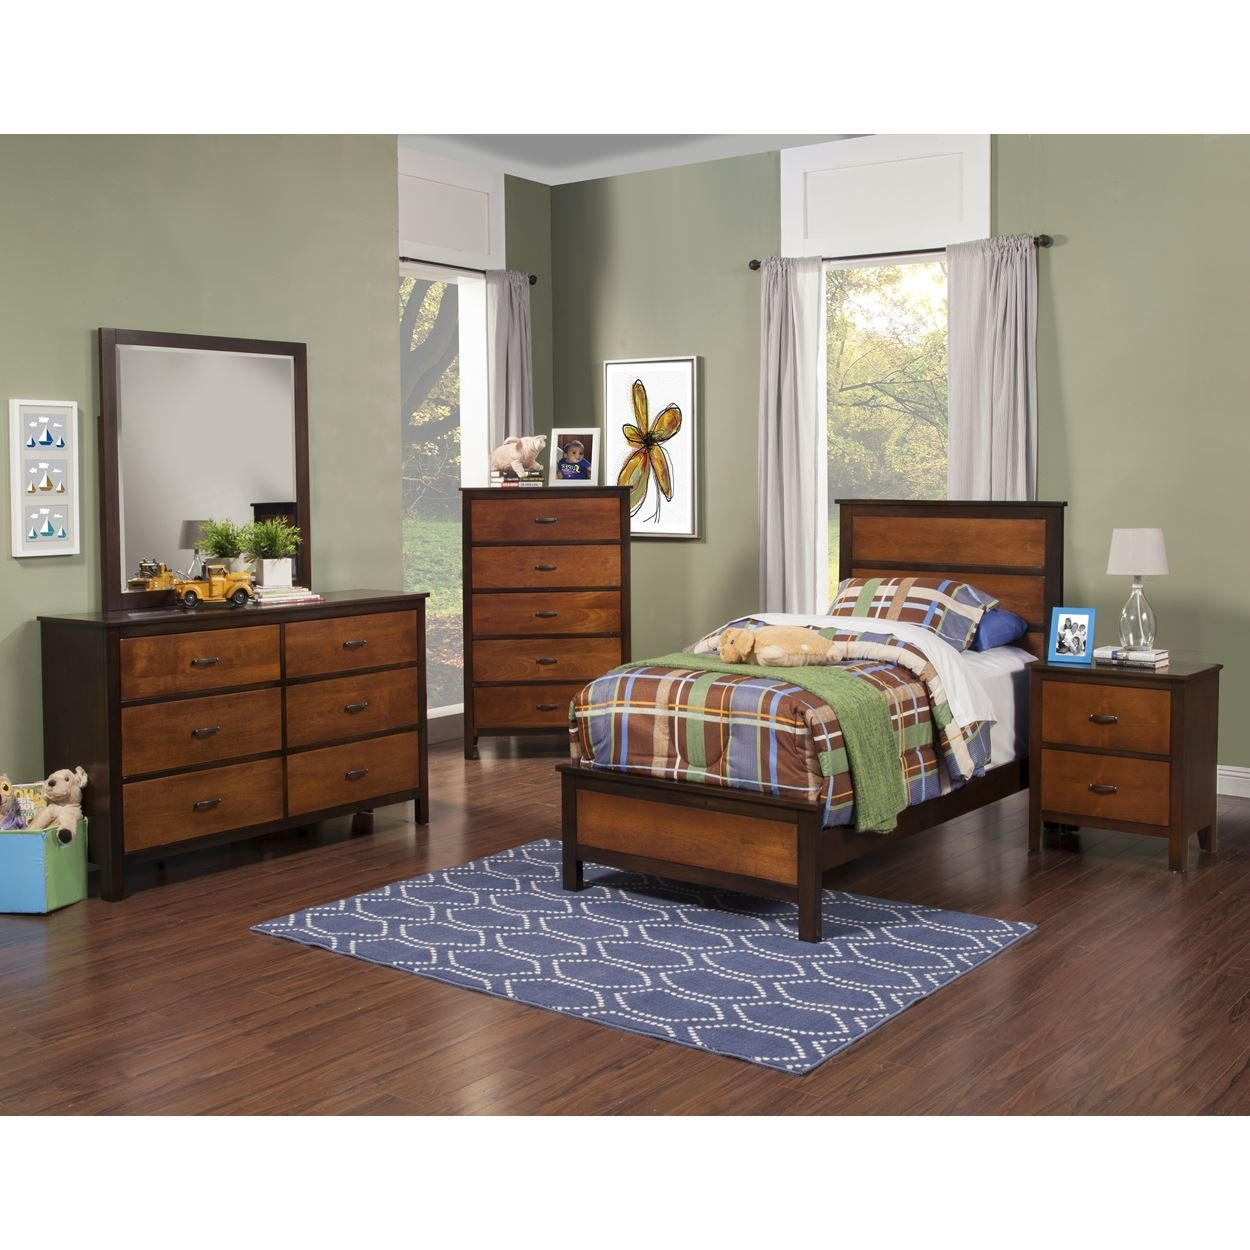 Brunswick Modern Youth 4 Piece Twin Bed, Nightstand, Dresser & Mirror in 2 Tone Copper with Chestnut Trim